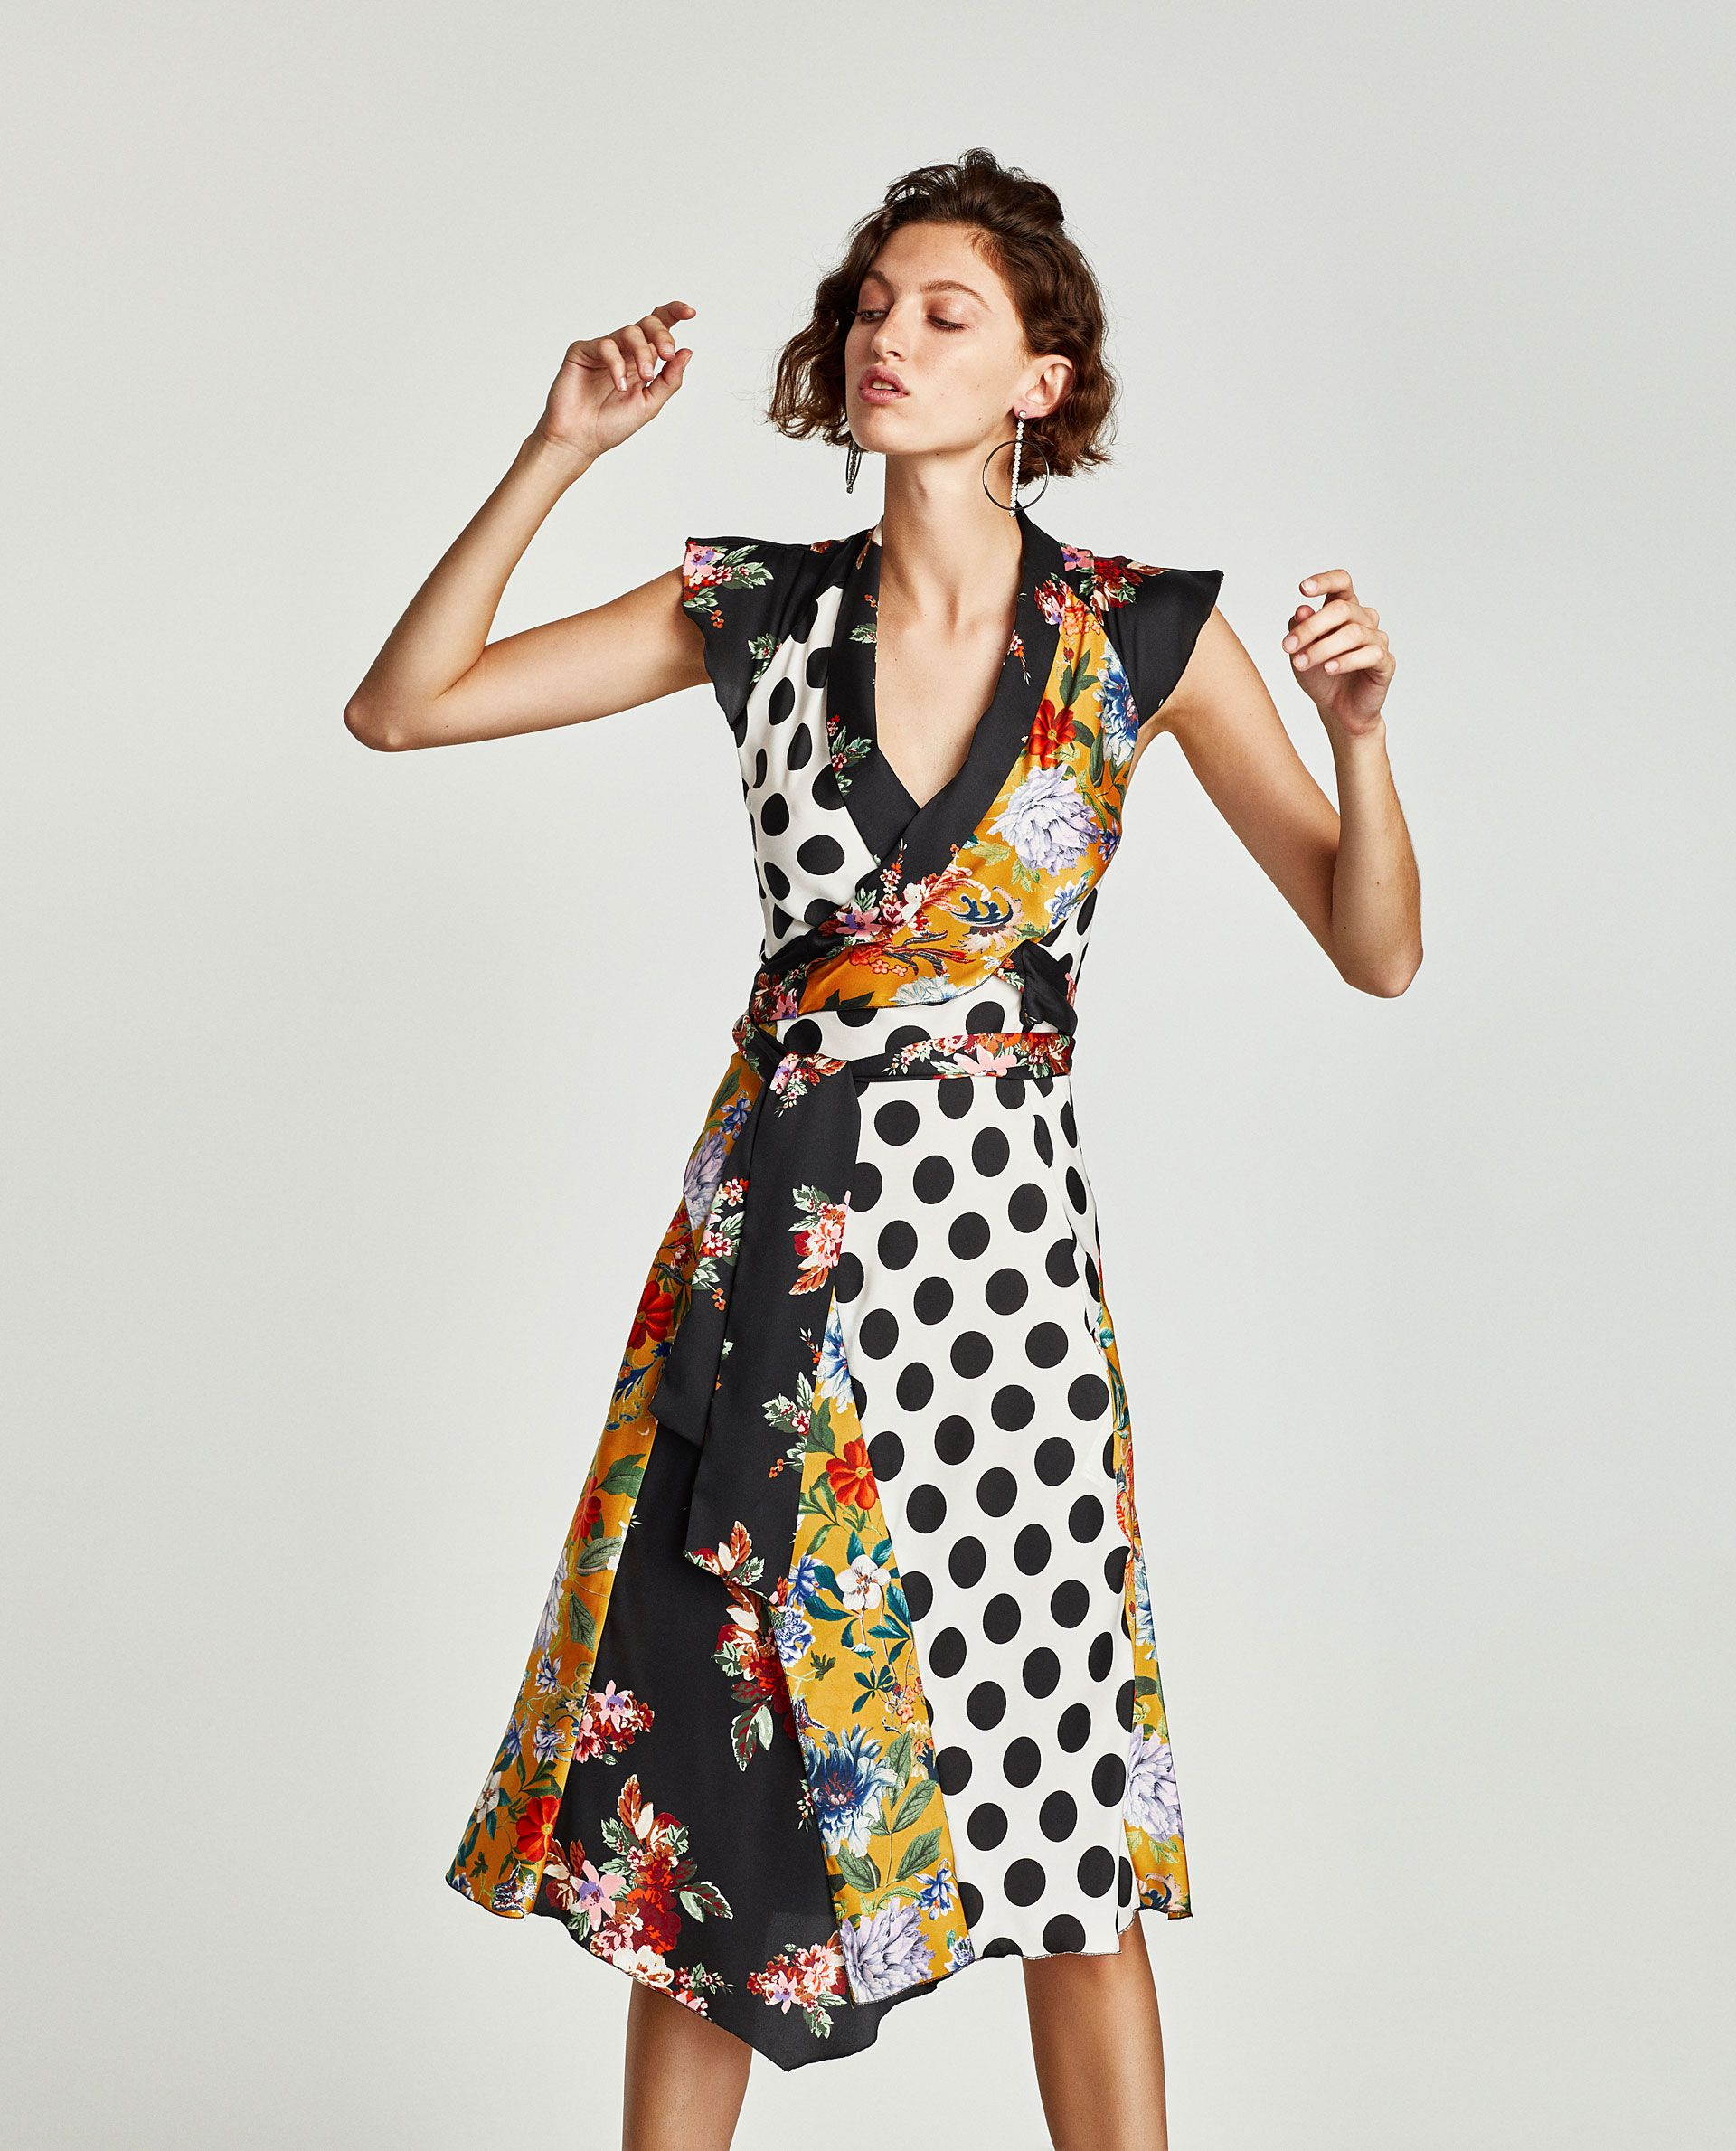 a78712b5d7cc Image 6 of FLORAL AND POLKA DOT PATCHWORK DRESS from Zara | My Style ...